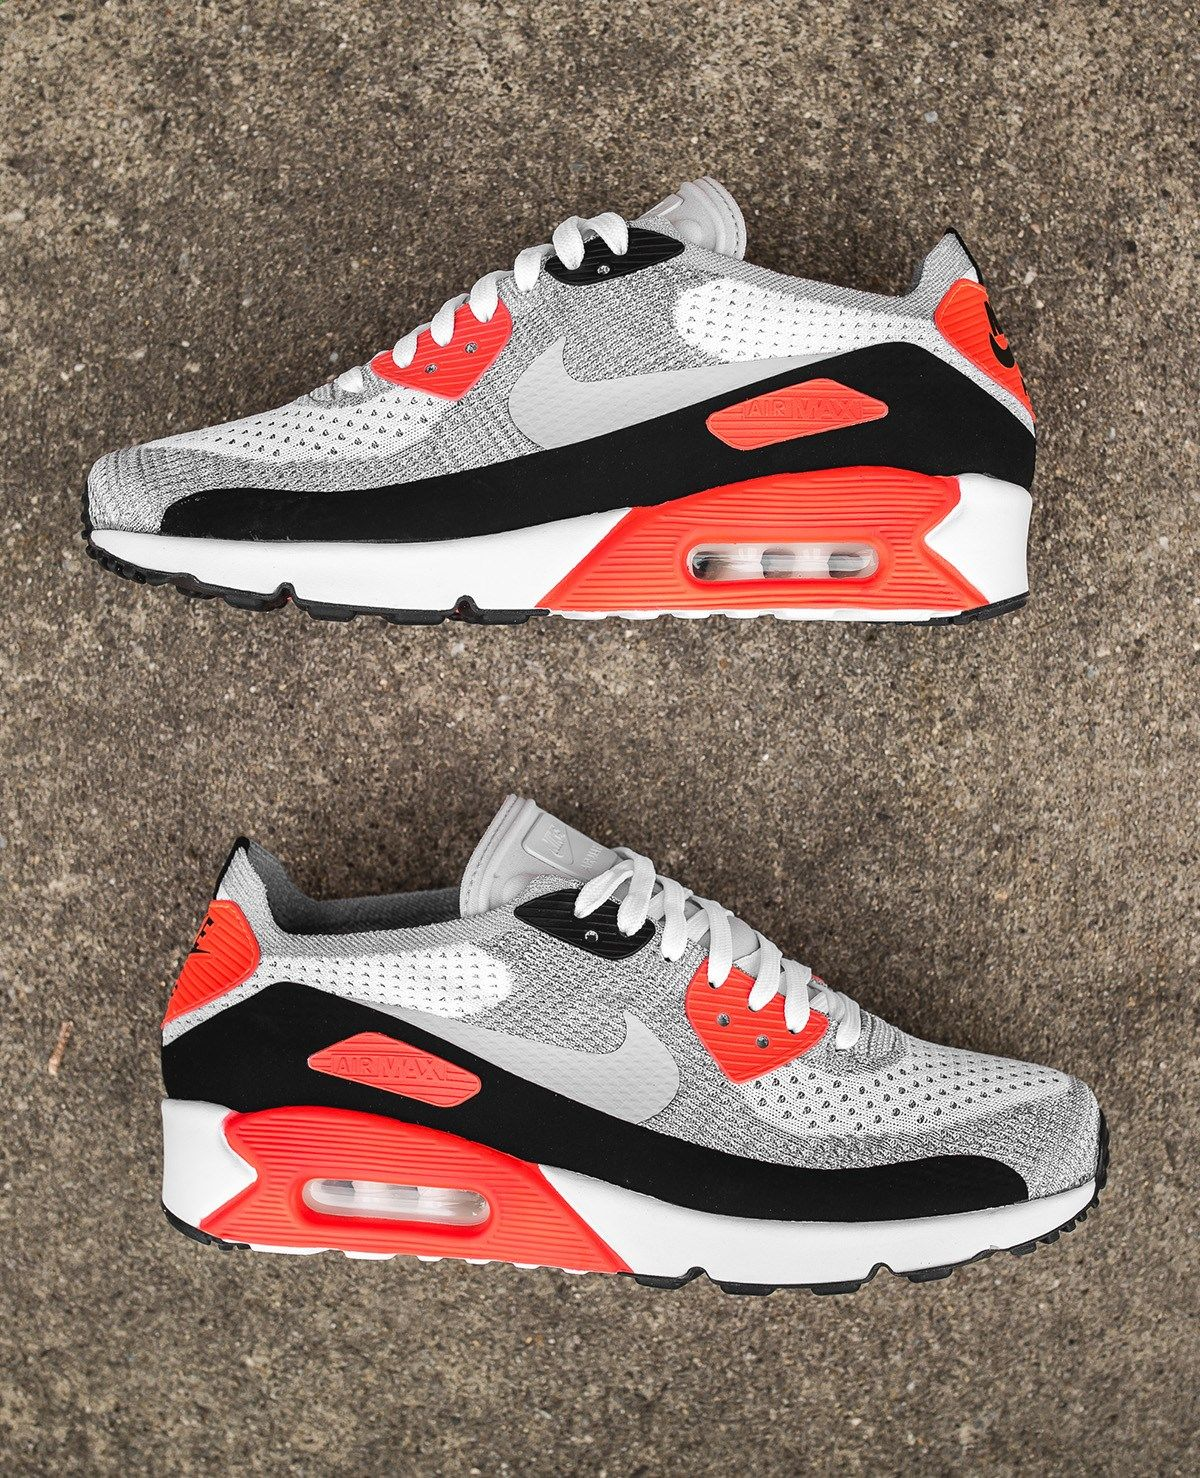 Nike Air Max 90 Ultra 2.0 Flyknit Infrared 10 Detailed Pictures - EU Kicks:  Sneaker